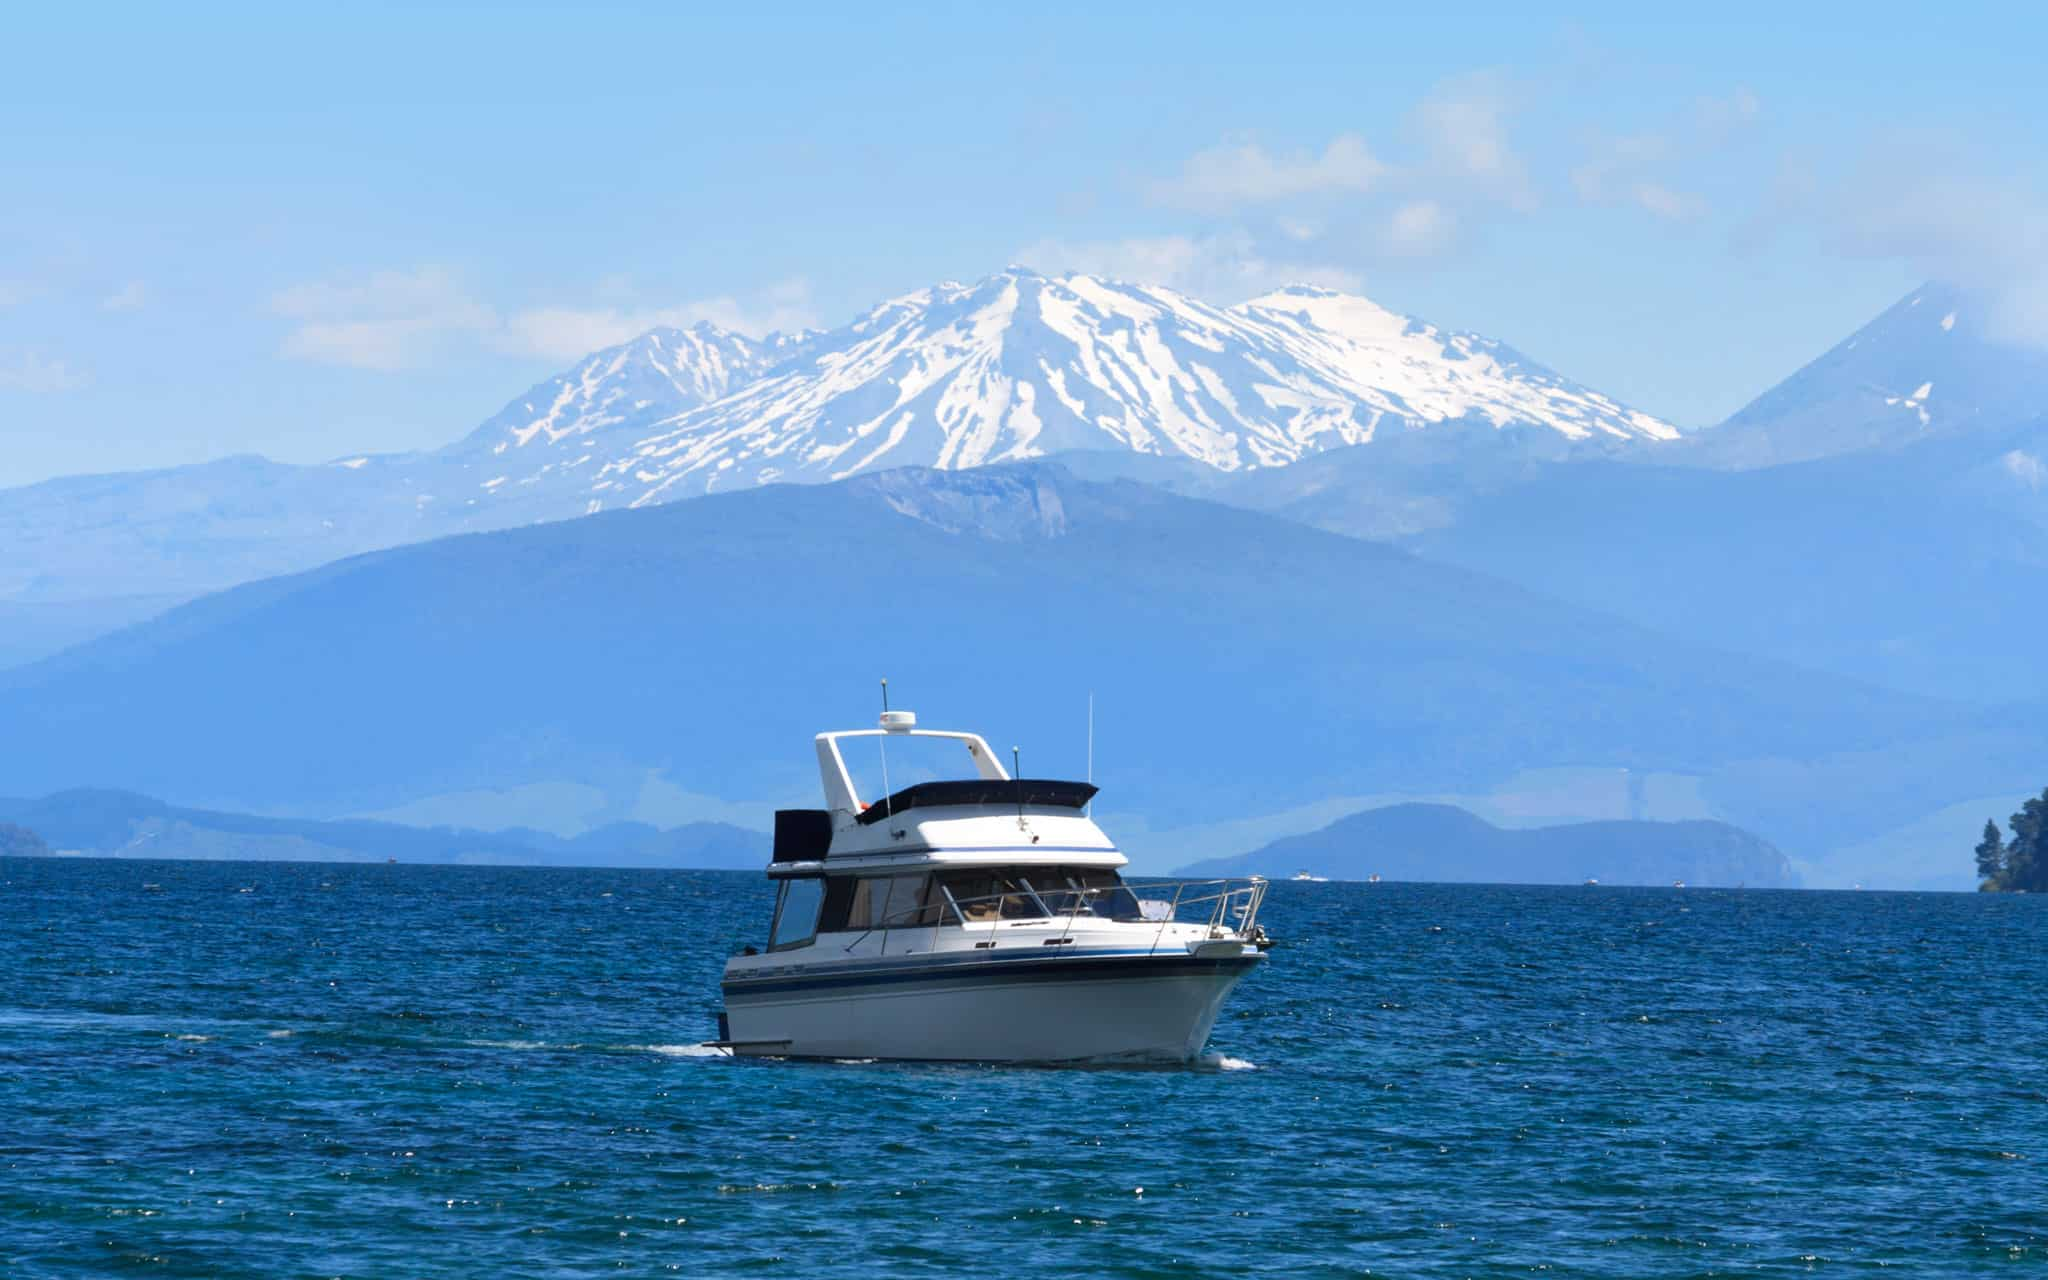 Stay-in-Taupo-Accommodation-Bed-and-Breakfast-in-Taupo-Waikato-New-Zealand-4